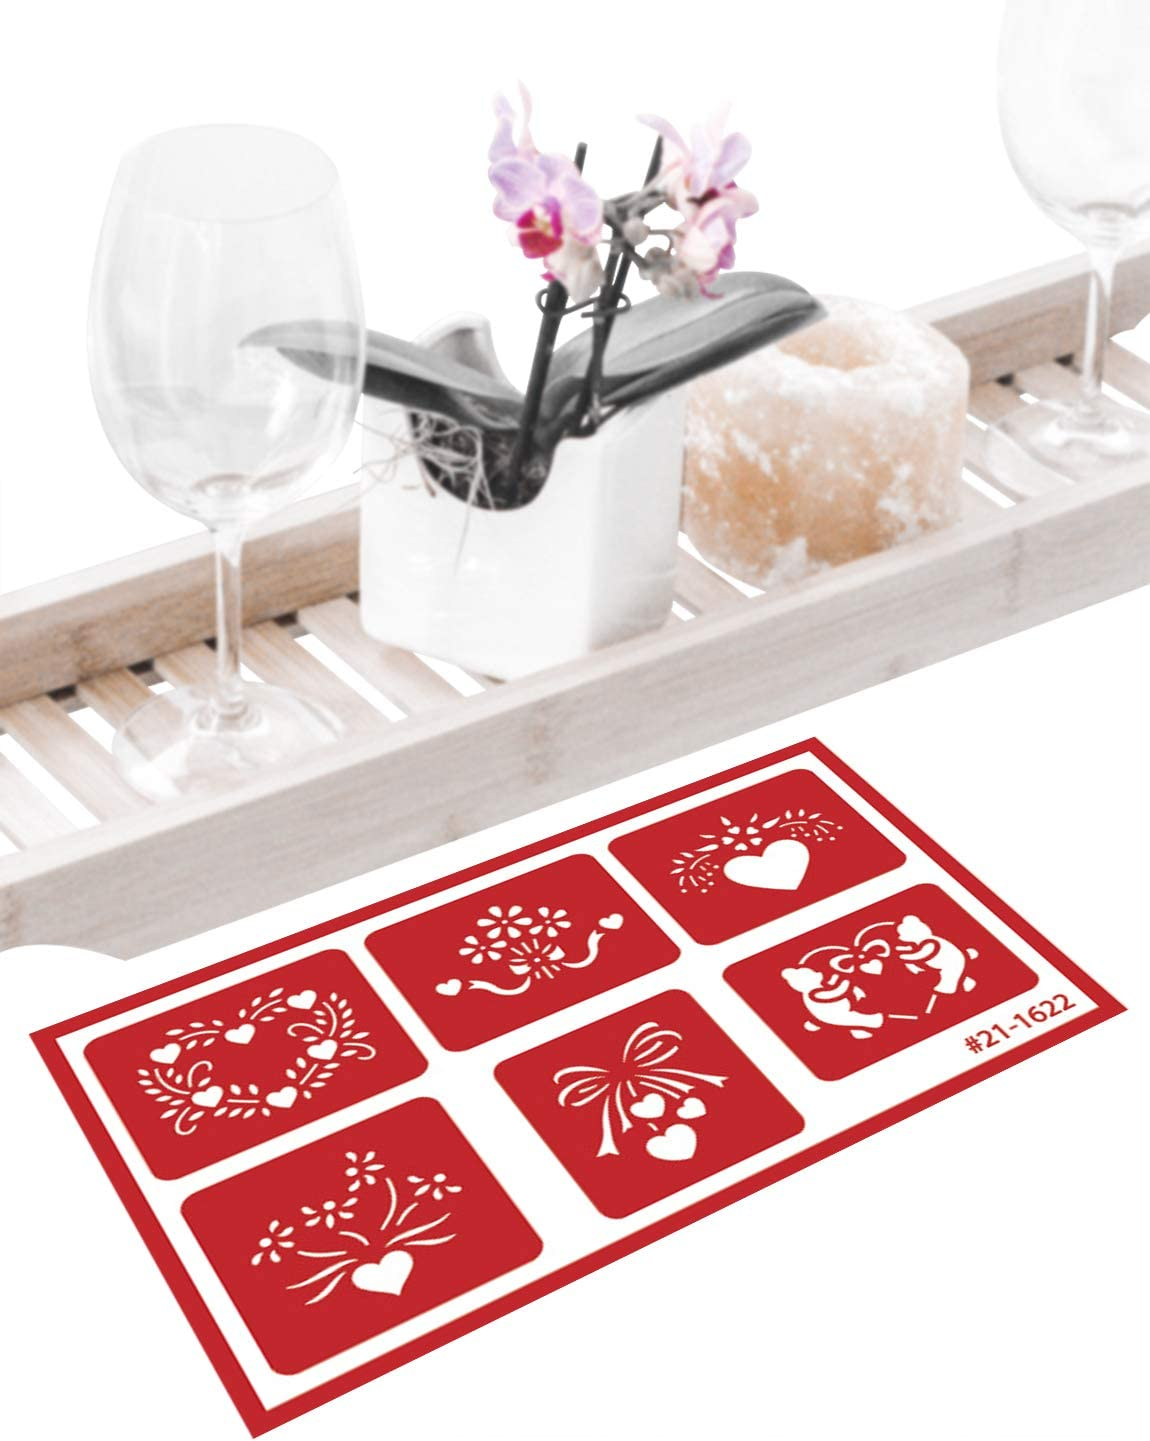 Total 5 Items Heart Floral Set Includes Brush Circle Borders and Patterns Theme Stencil Star 4 Armour Etch Over N Over Reusable Glass Etching Stencils